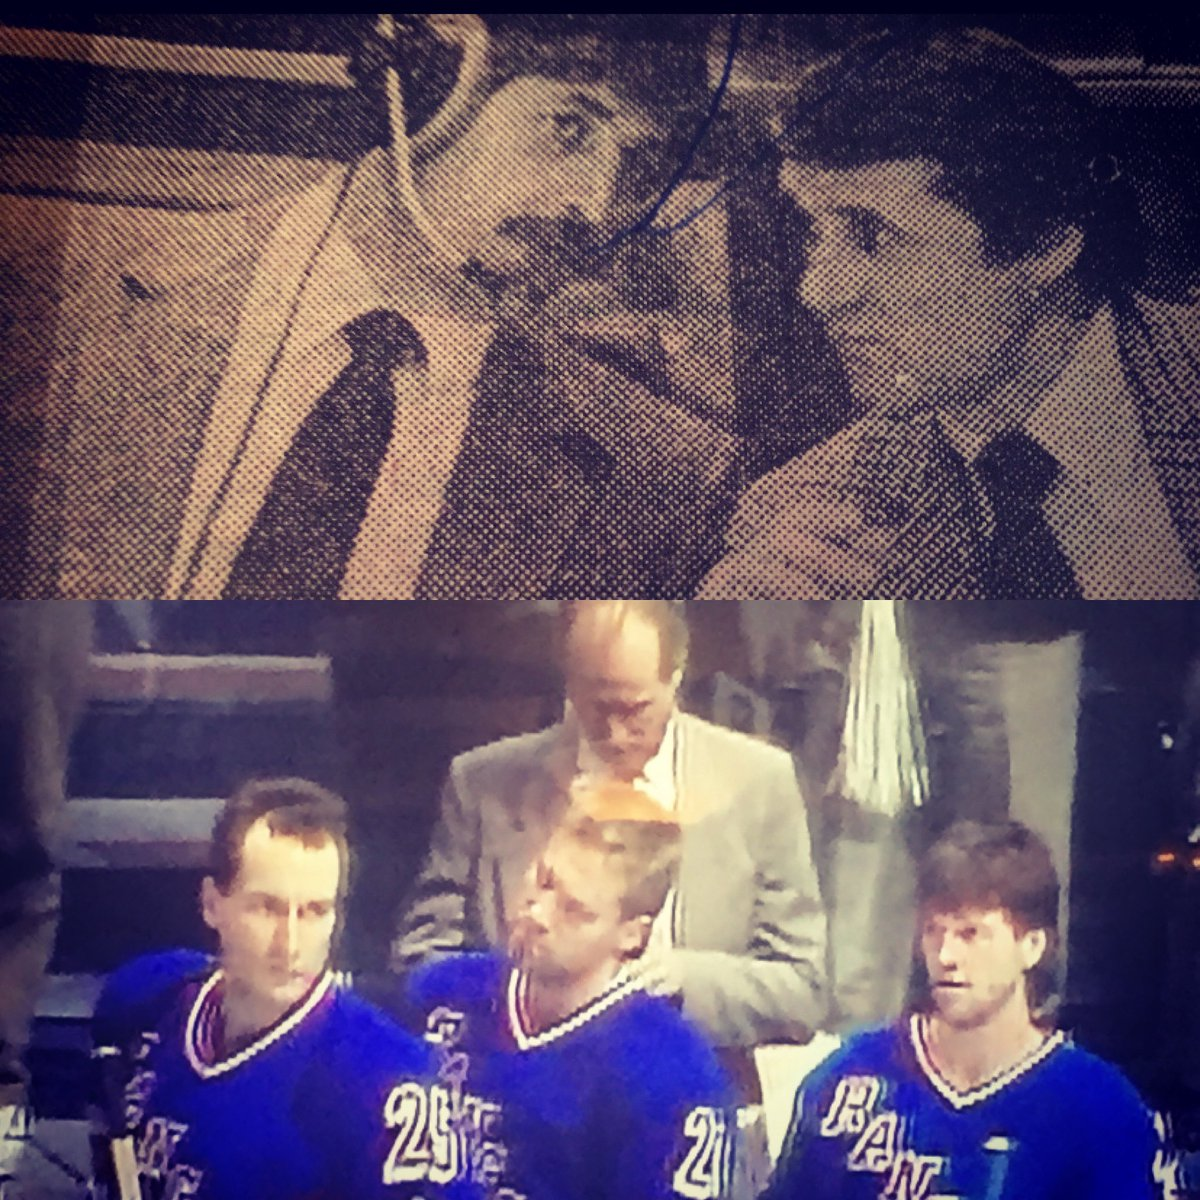 #54 Ok back to the Assistant Coaches again. Name the guy with his head down and guy with headphones on with Brooks? #nyrangersfan #nyr #oldschool #assistants #hockey #nhl #rangers https://t.co/u3PeAI2p62